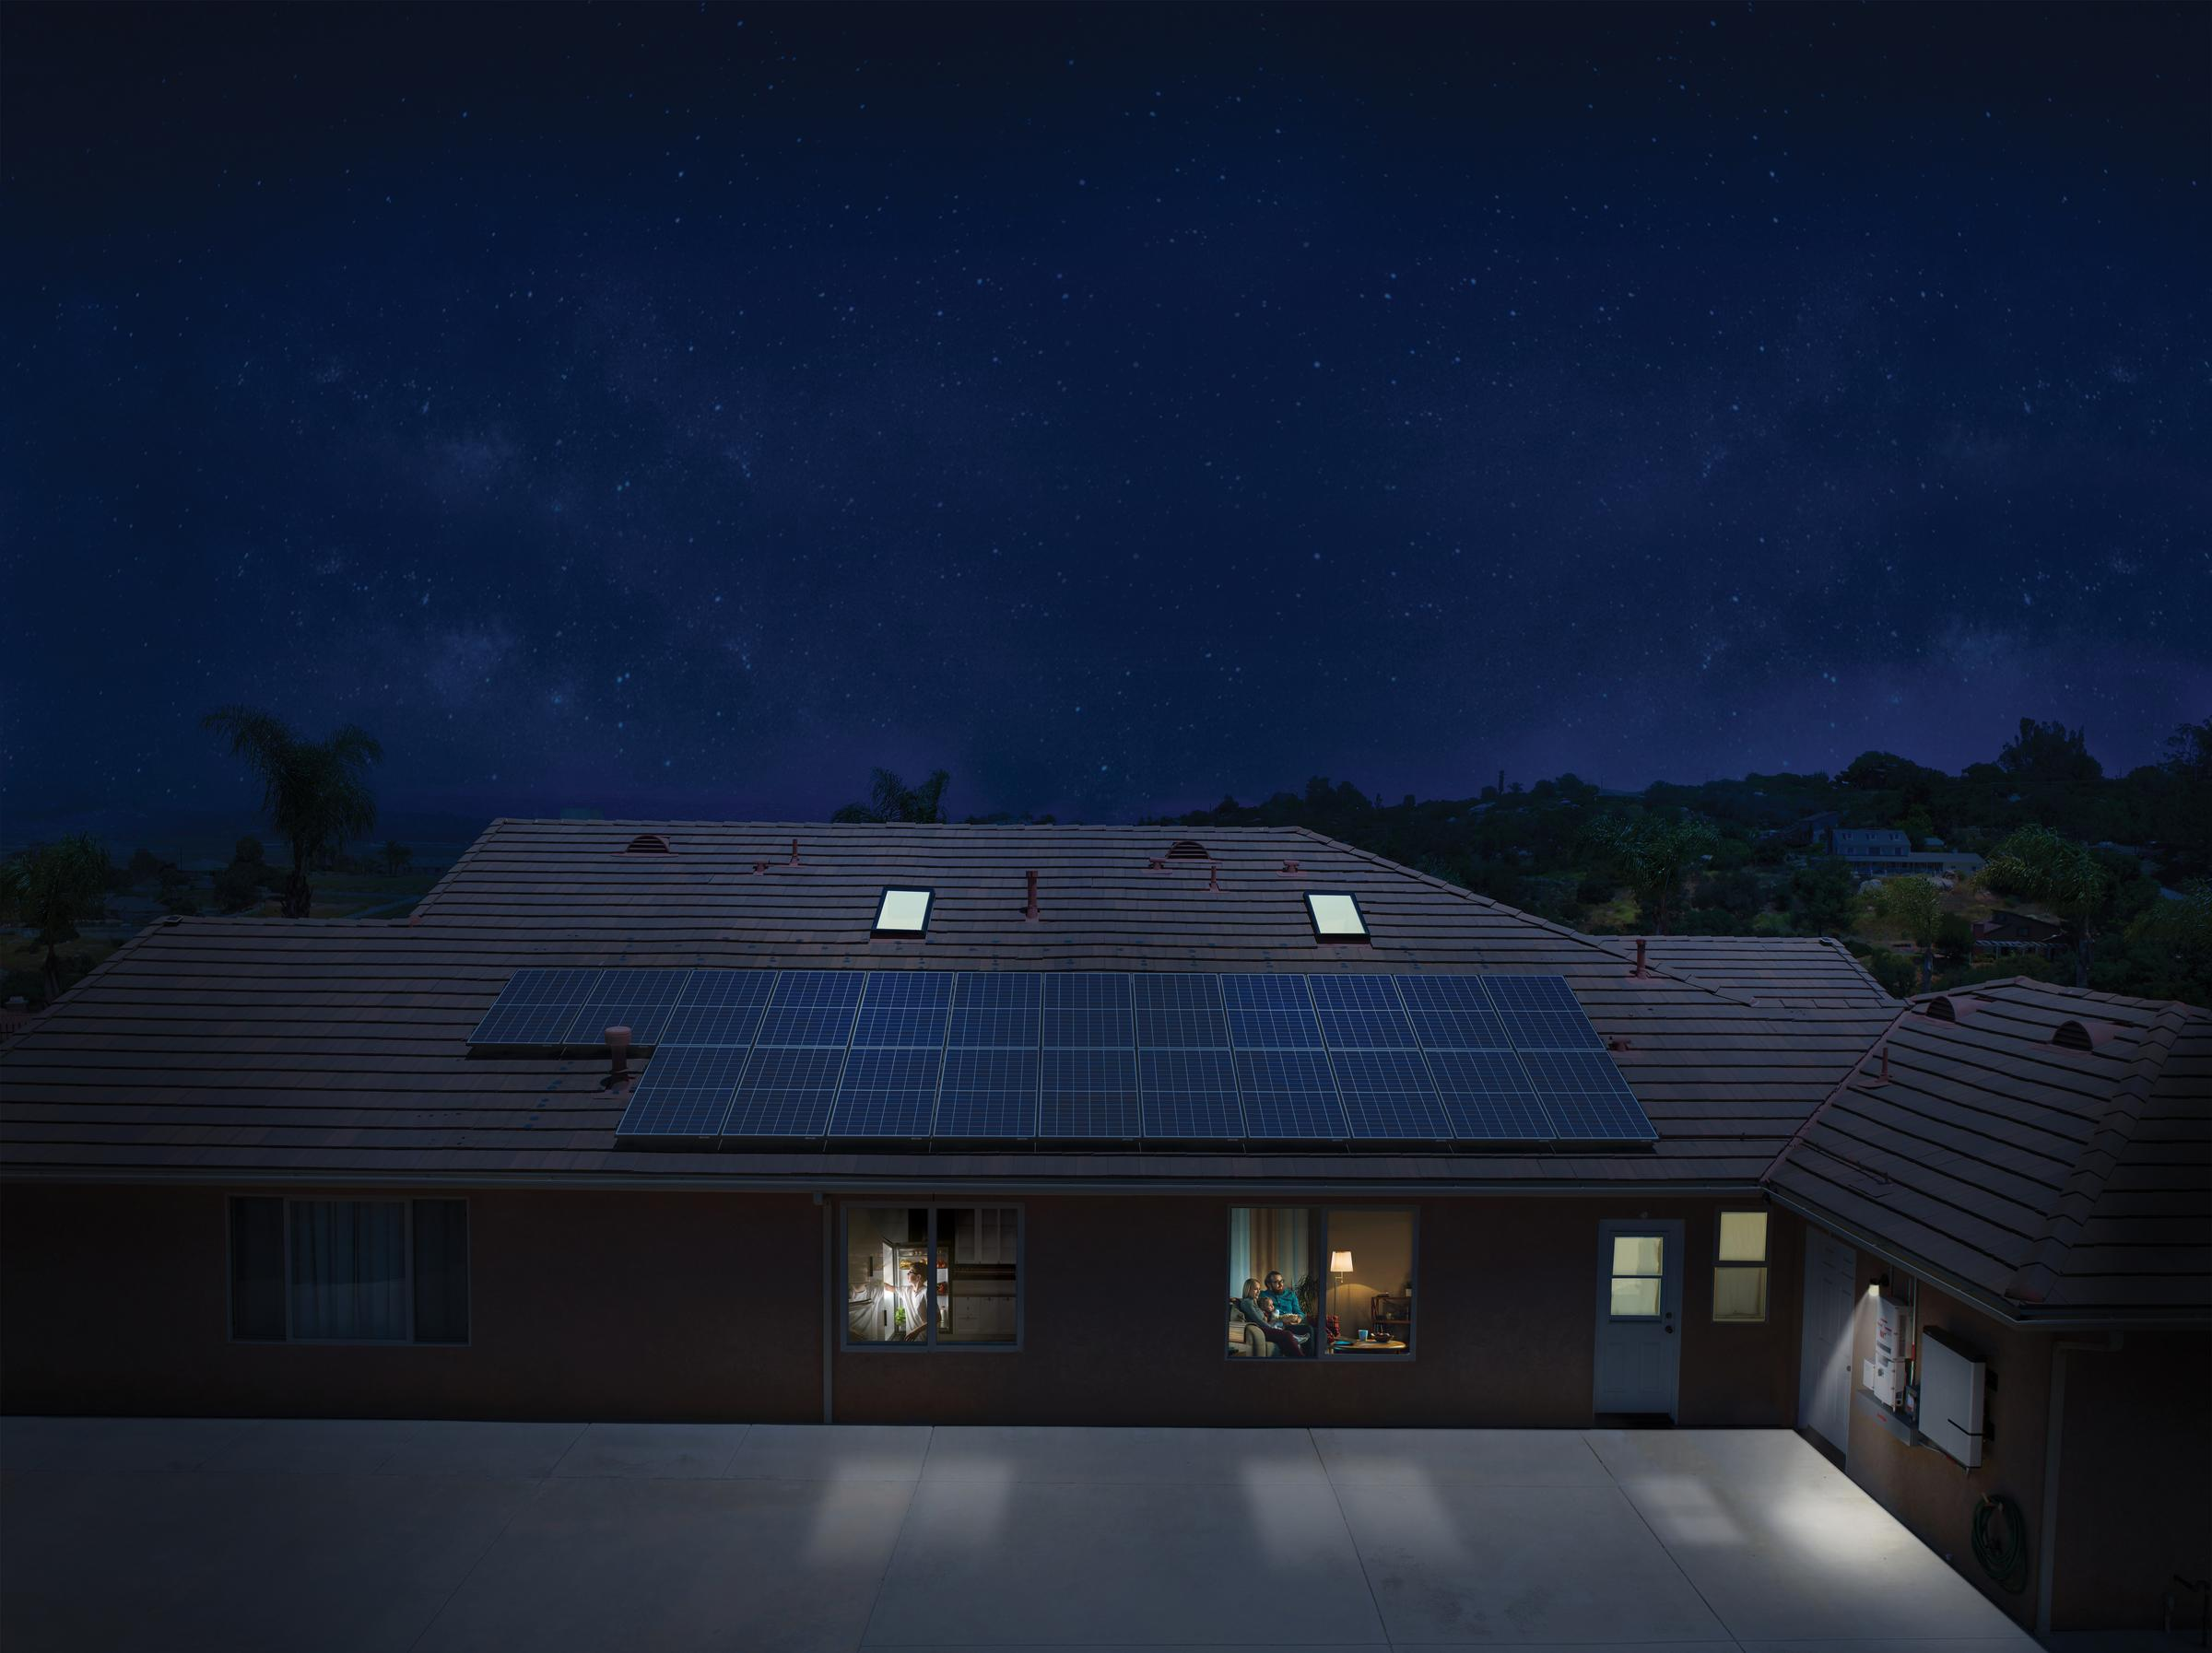 Update California's solar net metering policy to center equity, resilience and climate goals